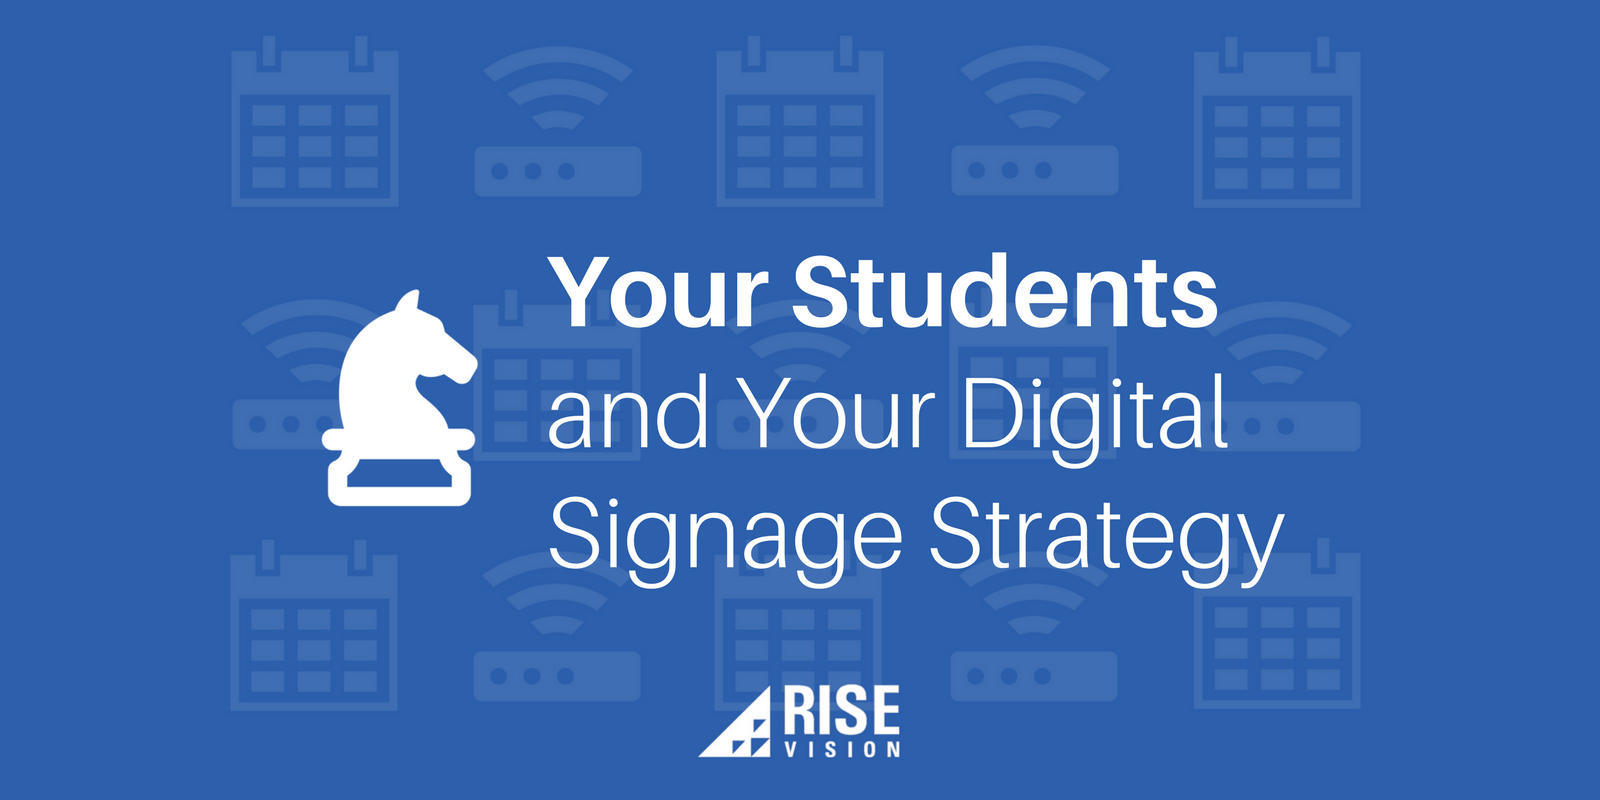 Rise Vision Digital Signage Campus Students College University Strategy.png